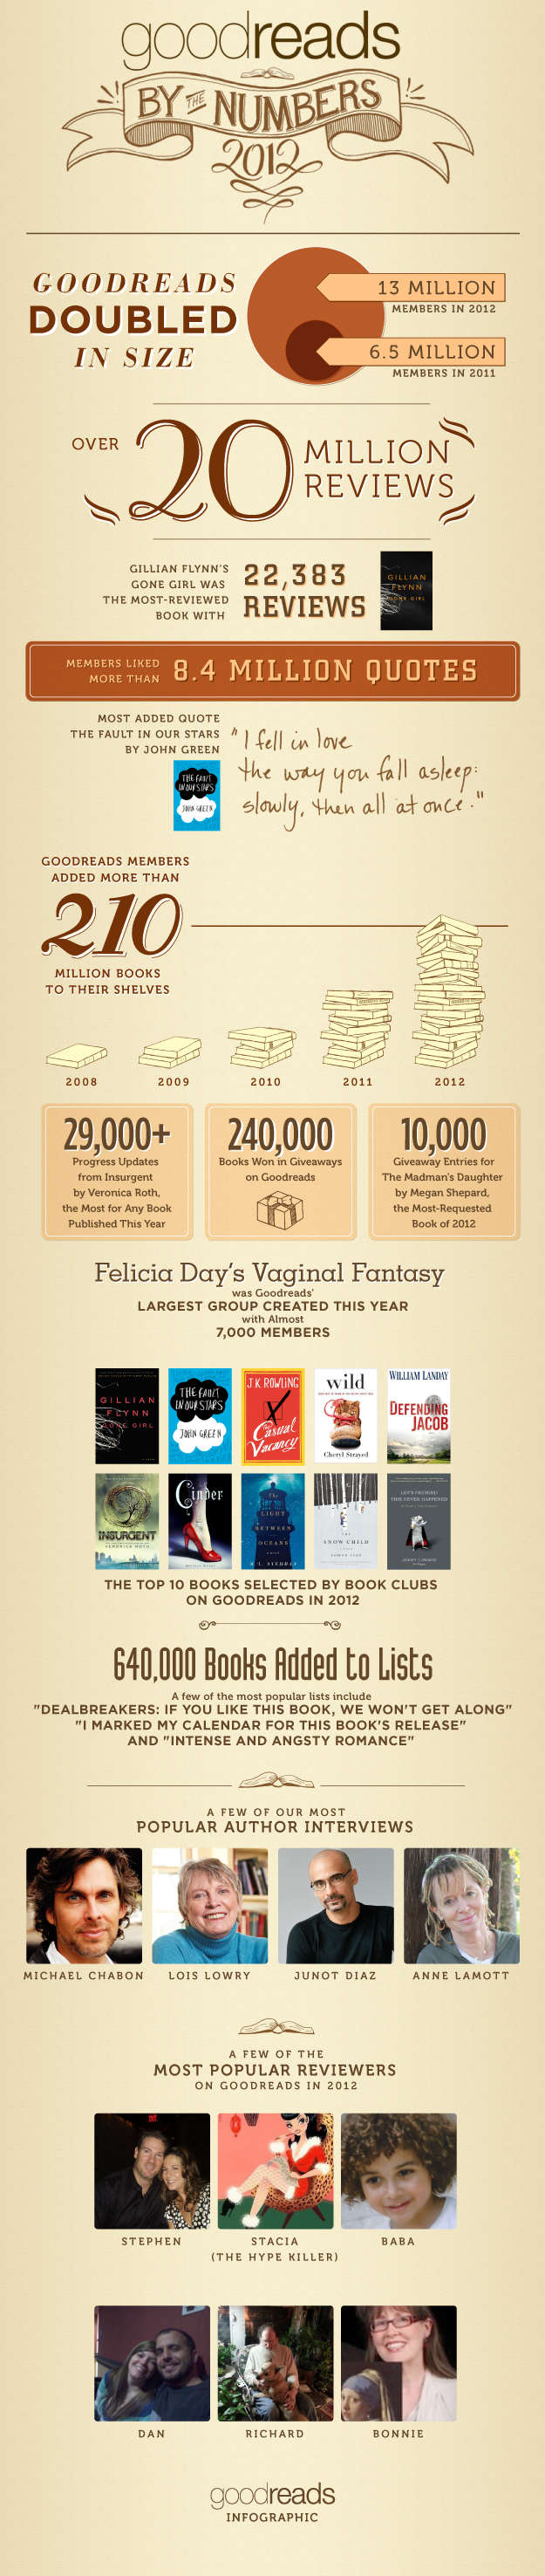 "Image ""Goodreads by the Numbers 2012"" via Goodreads"